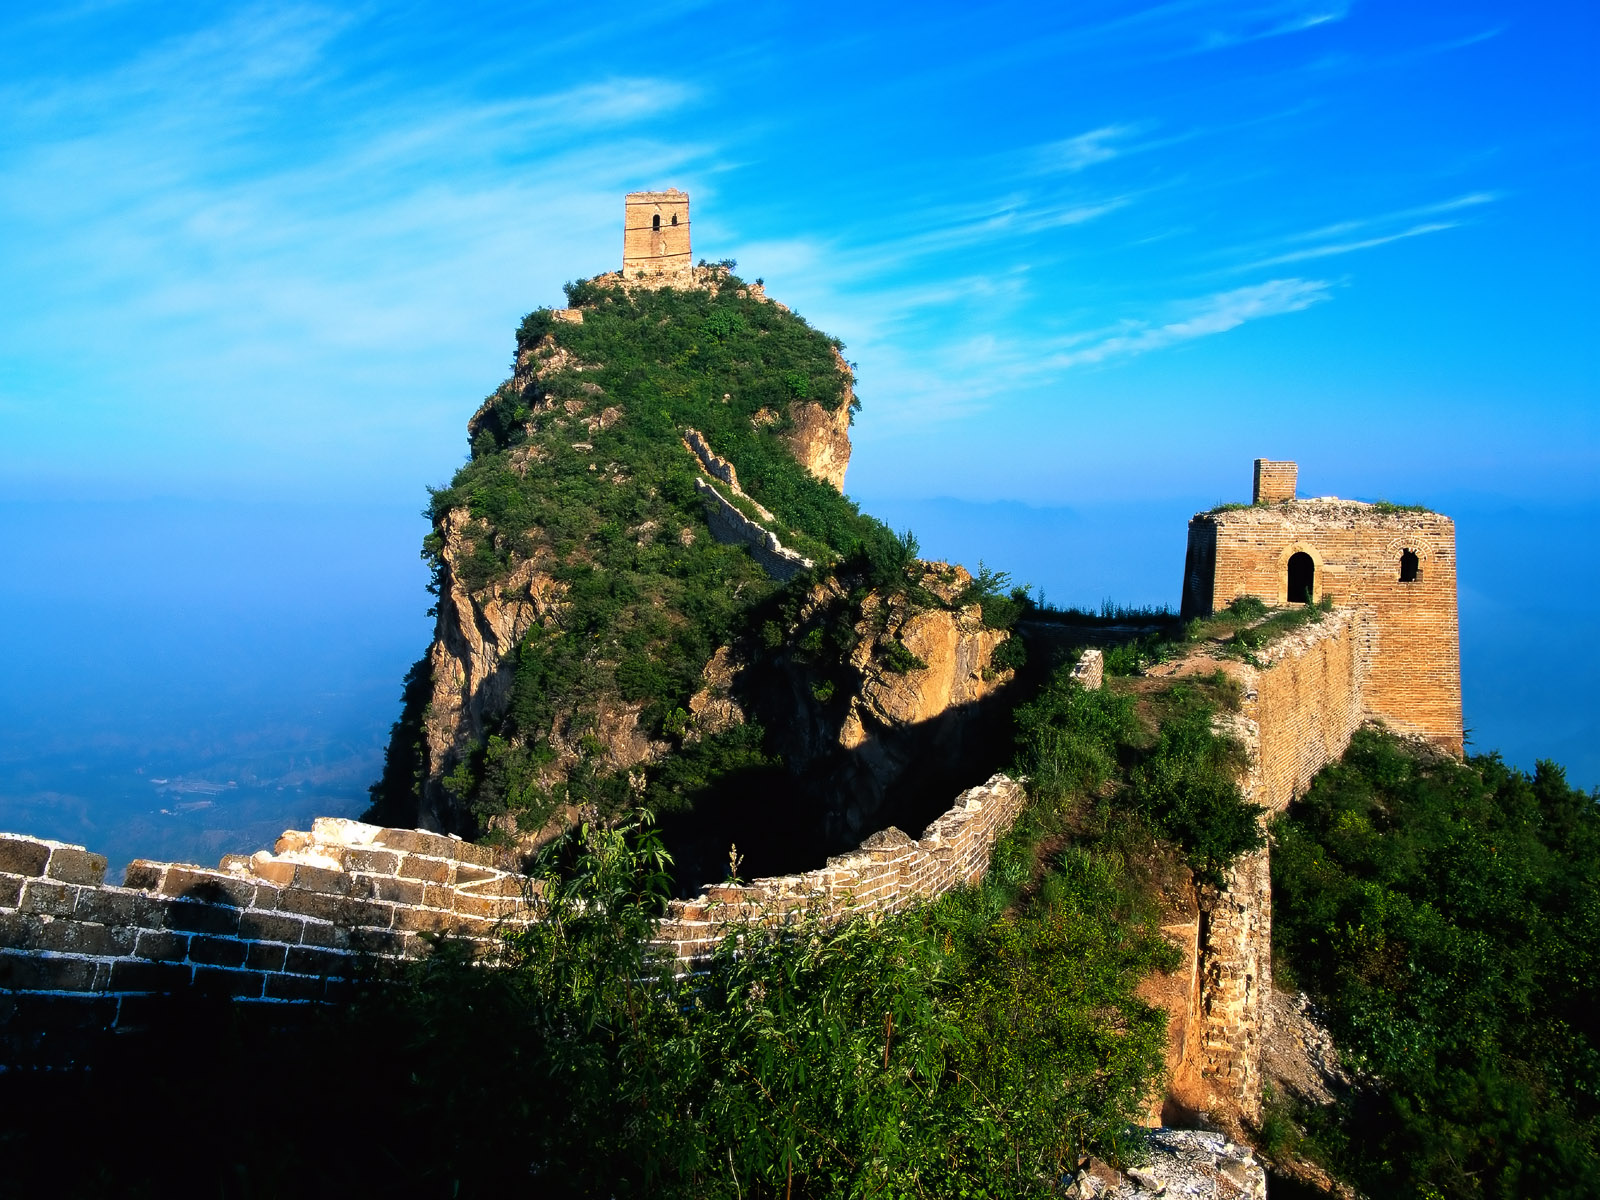 http://2.bp.blogspot.com/-RDtR6iI1-kQ/TtiyuCKHf-I/AAAAAAAAF1A/_yDVw0gx0og/s1600/great_wall_china_wallpaper_pictures_wonders_architecture_.jpg